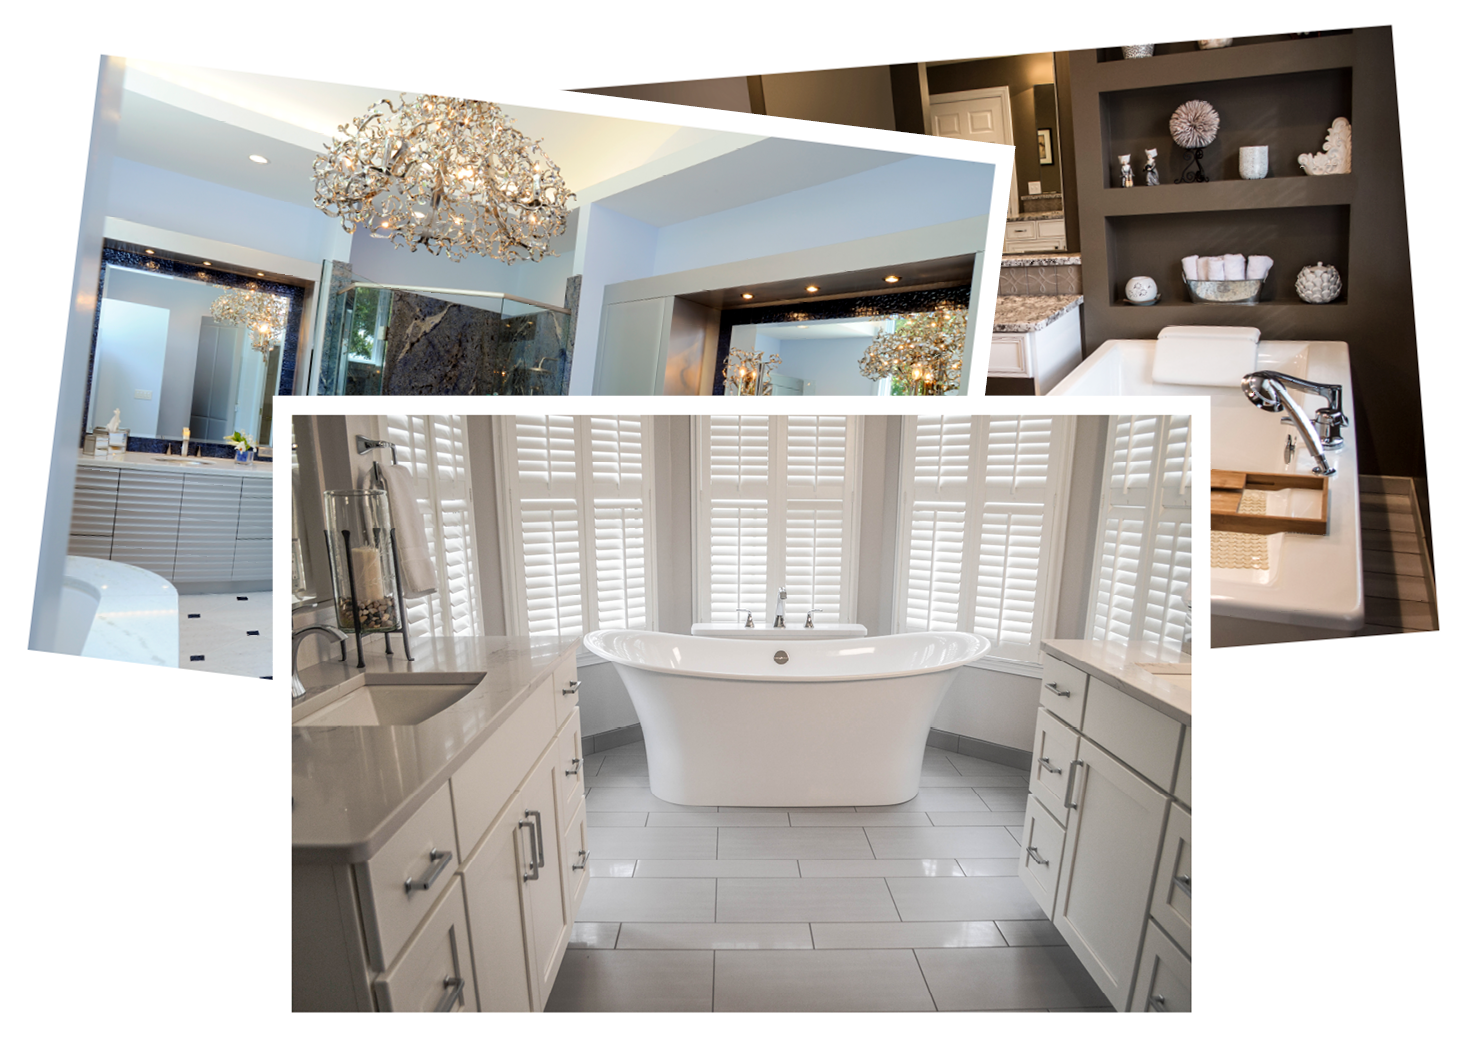 Bathroom kitchen design - Our Story